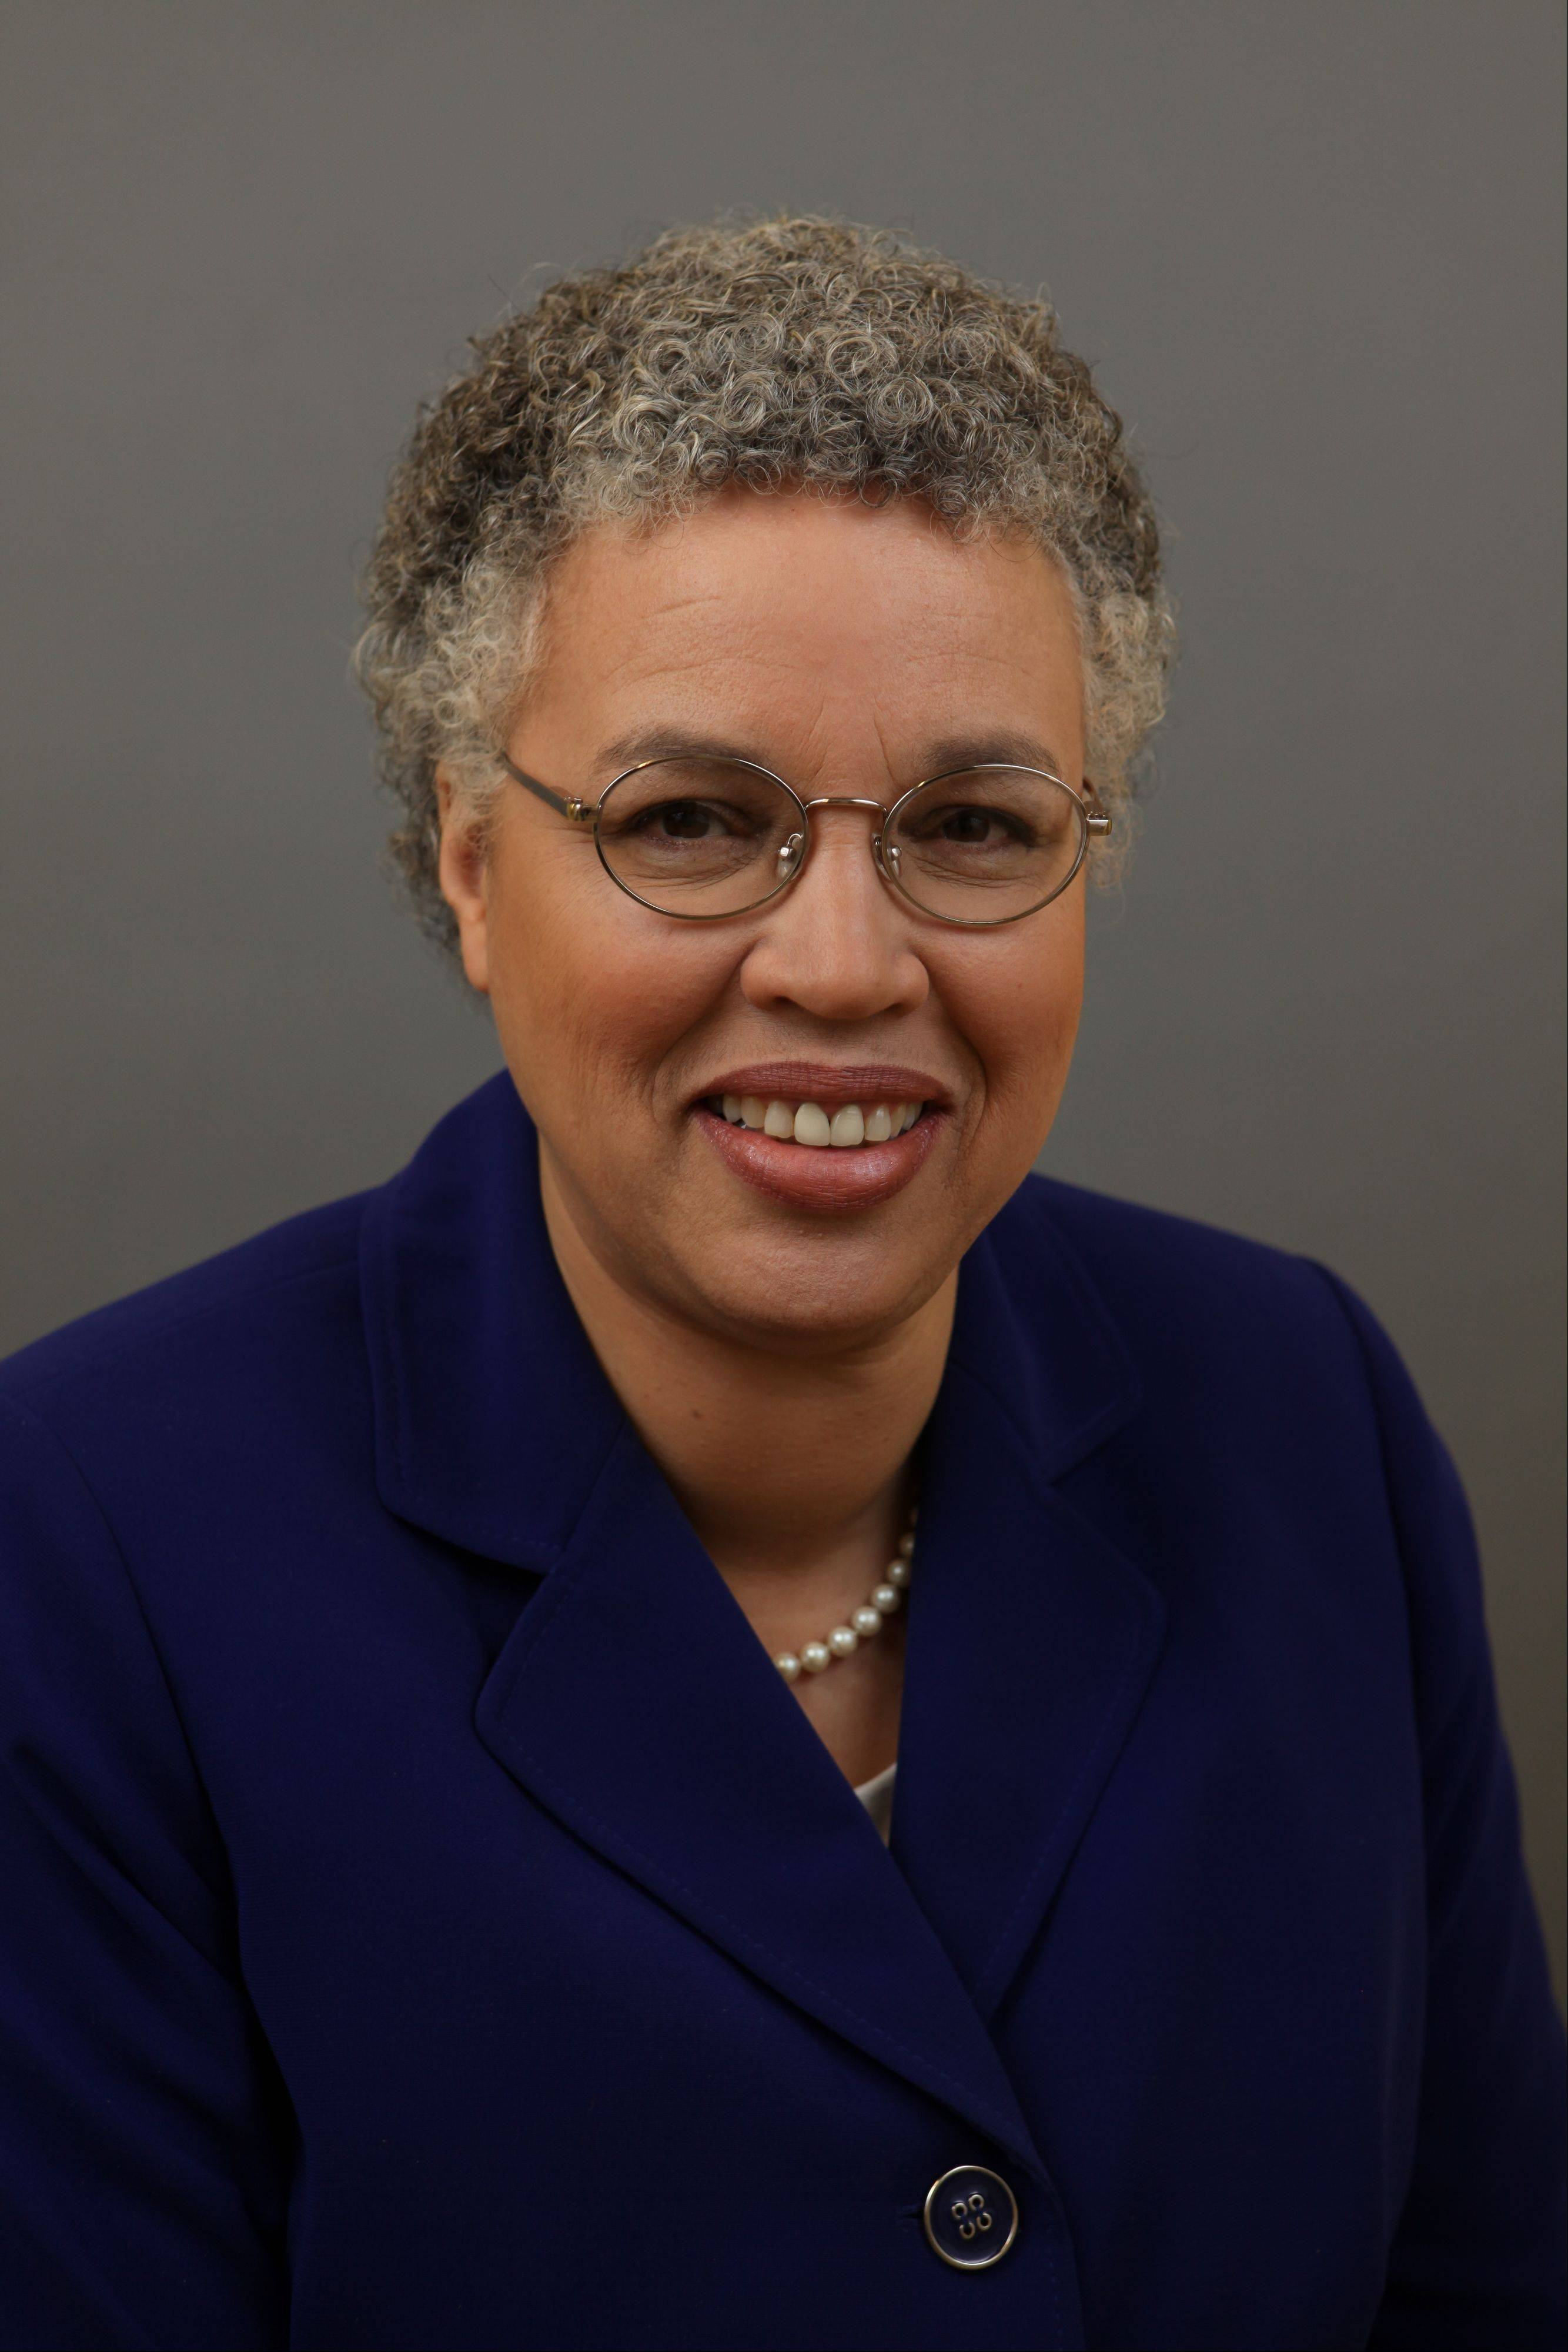 Cook County Board President Toni Preckwinkle is setting aside $5 million in the upcoming budget to help finance infrastructure projects in unincorporated areas that will make them more attractive to adjacent municipalities.